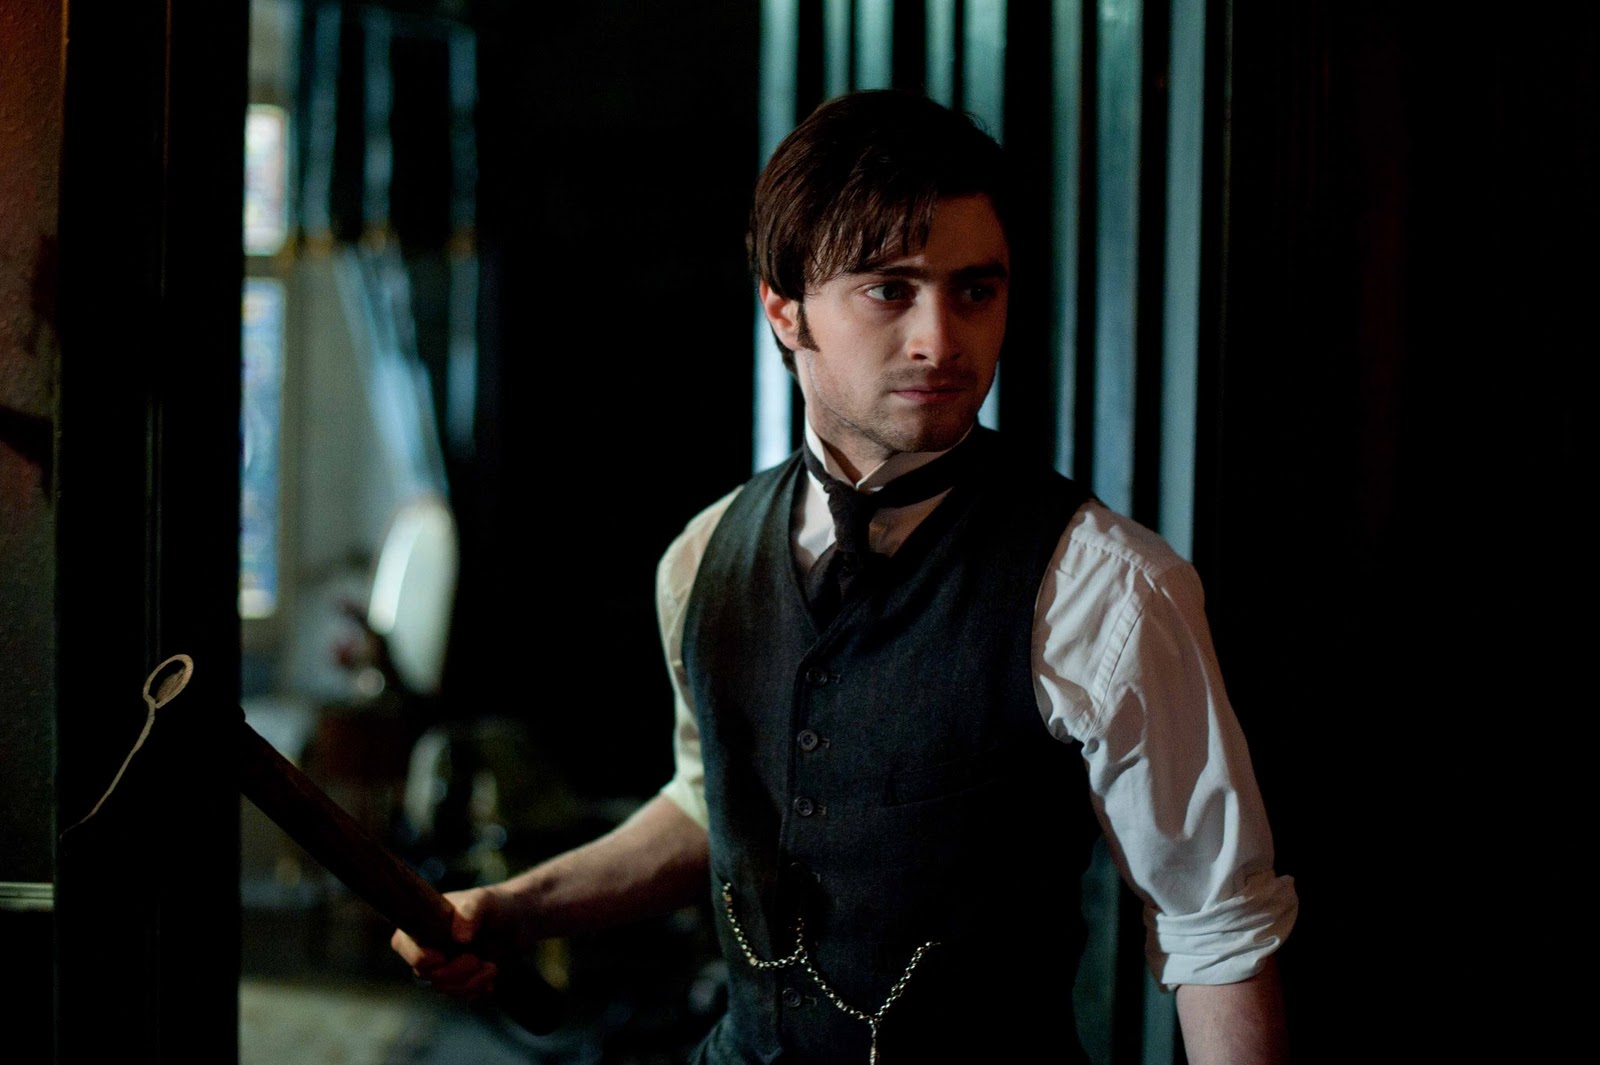 http://3.bp.blogspot.com/-VKvlfewWhng/T0ahlXtTY0I/AAAAAAAAANg/uql2lYVLpx8/s1600/Daniel-Radcliffe-The-Woman-in-Black.jpg